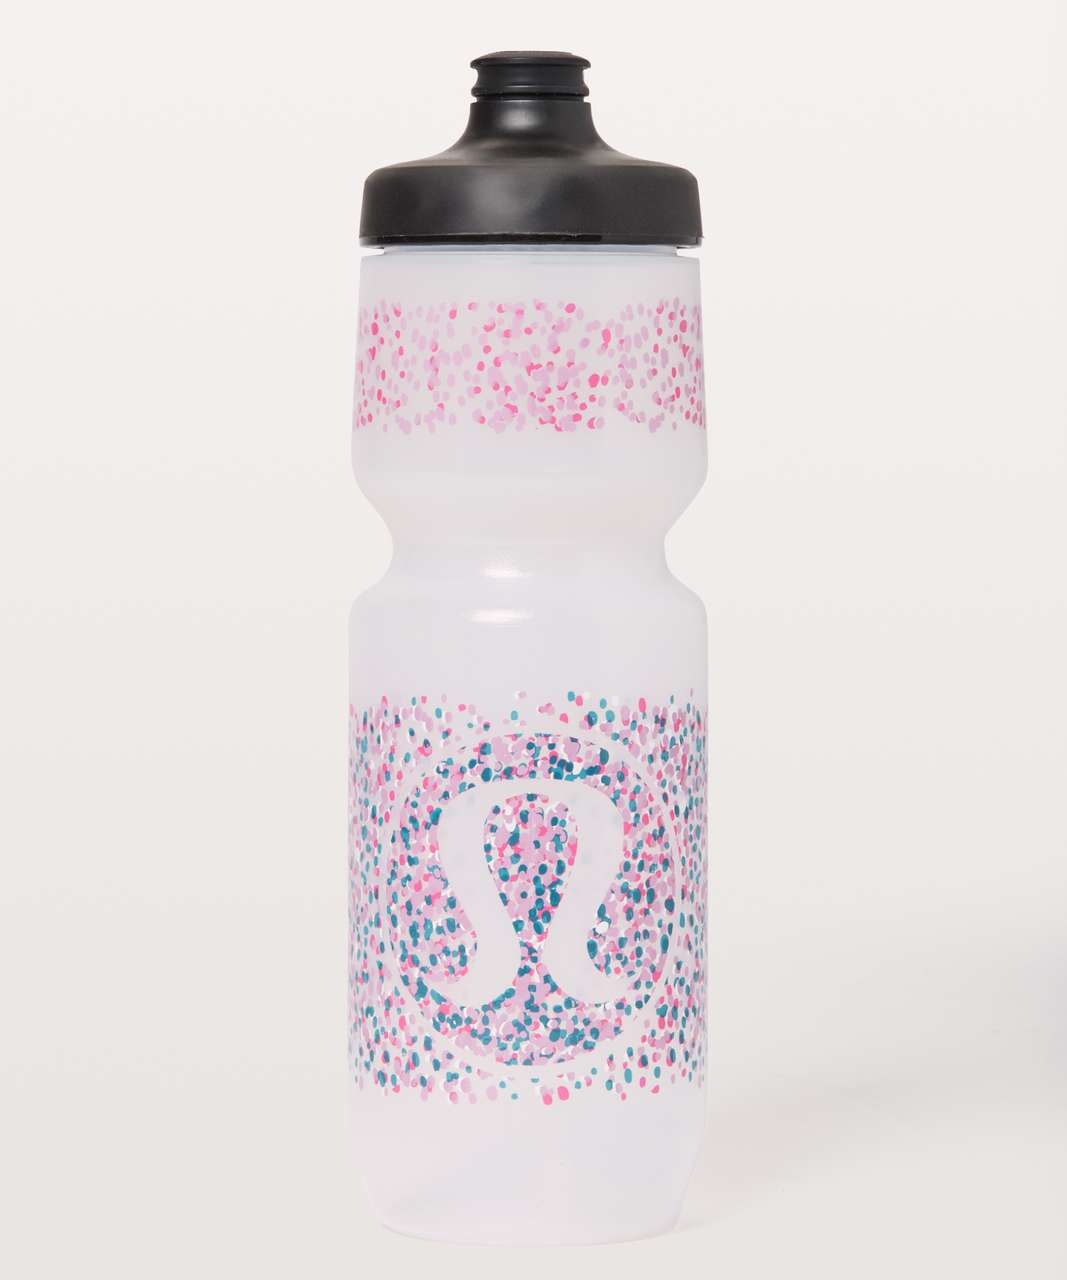 Lululemon Purist Cycling Water Bottle *26 oz - Purist Swerve Ruby Red Vivid Amber